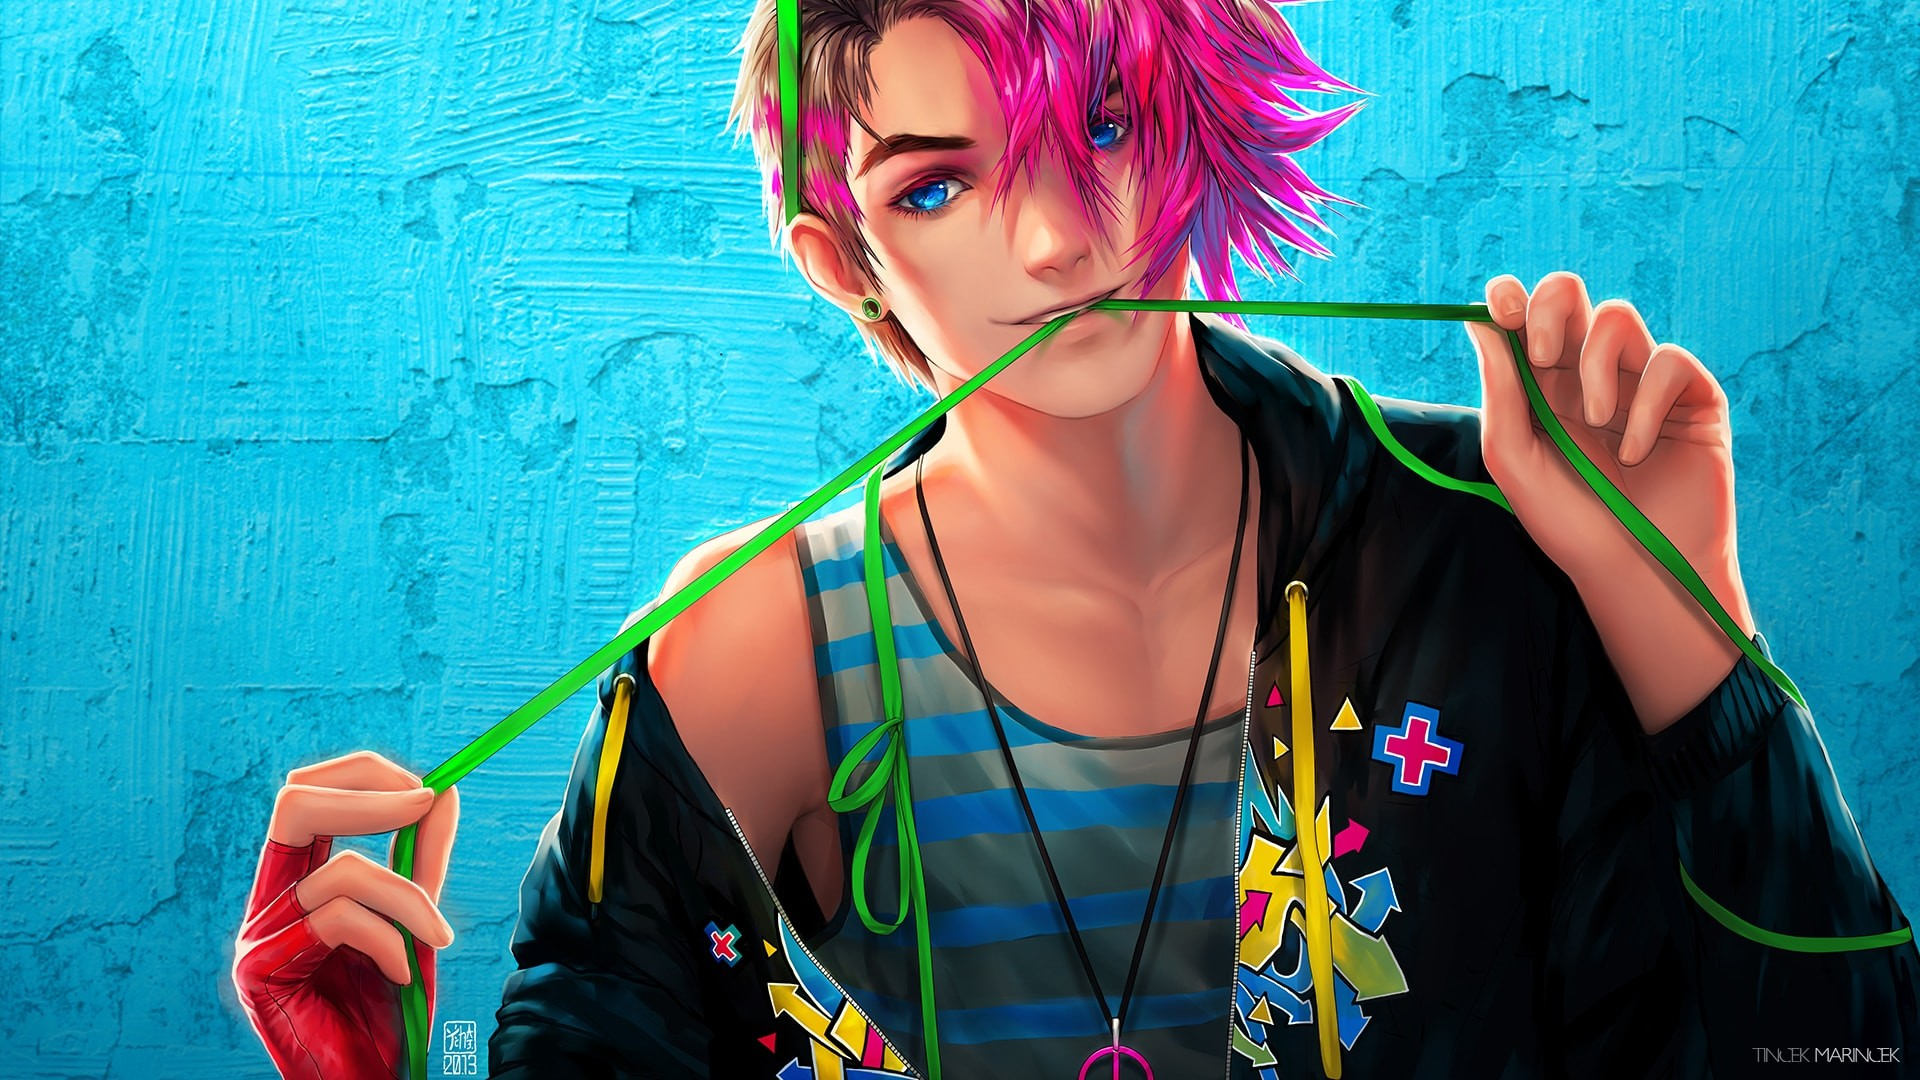 Stylish Anime Boy Profile Picture For Instagram Hd 1920x1080 Download Hd Wallpaper Wallpapertip